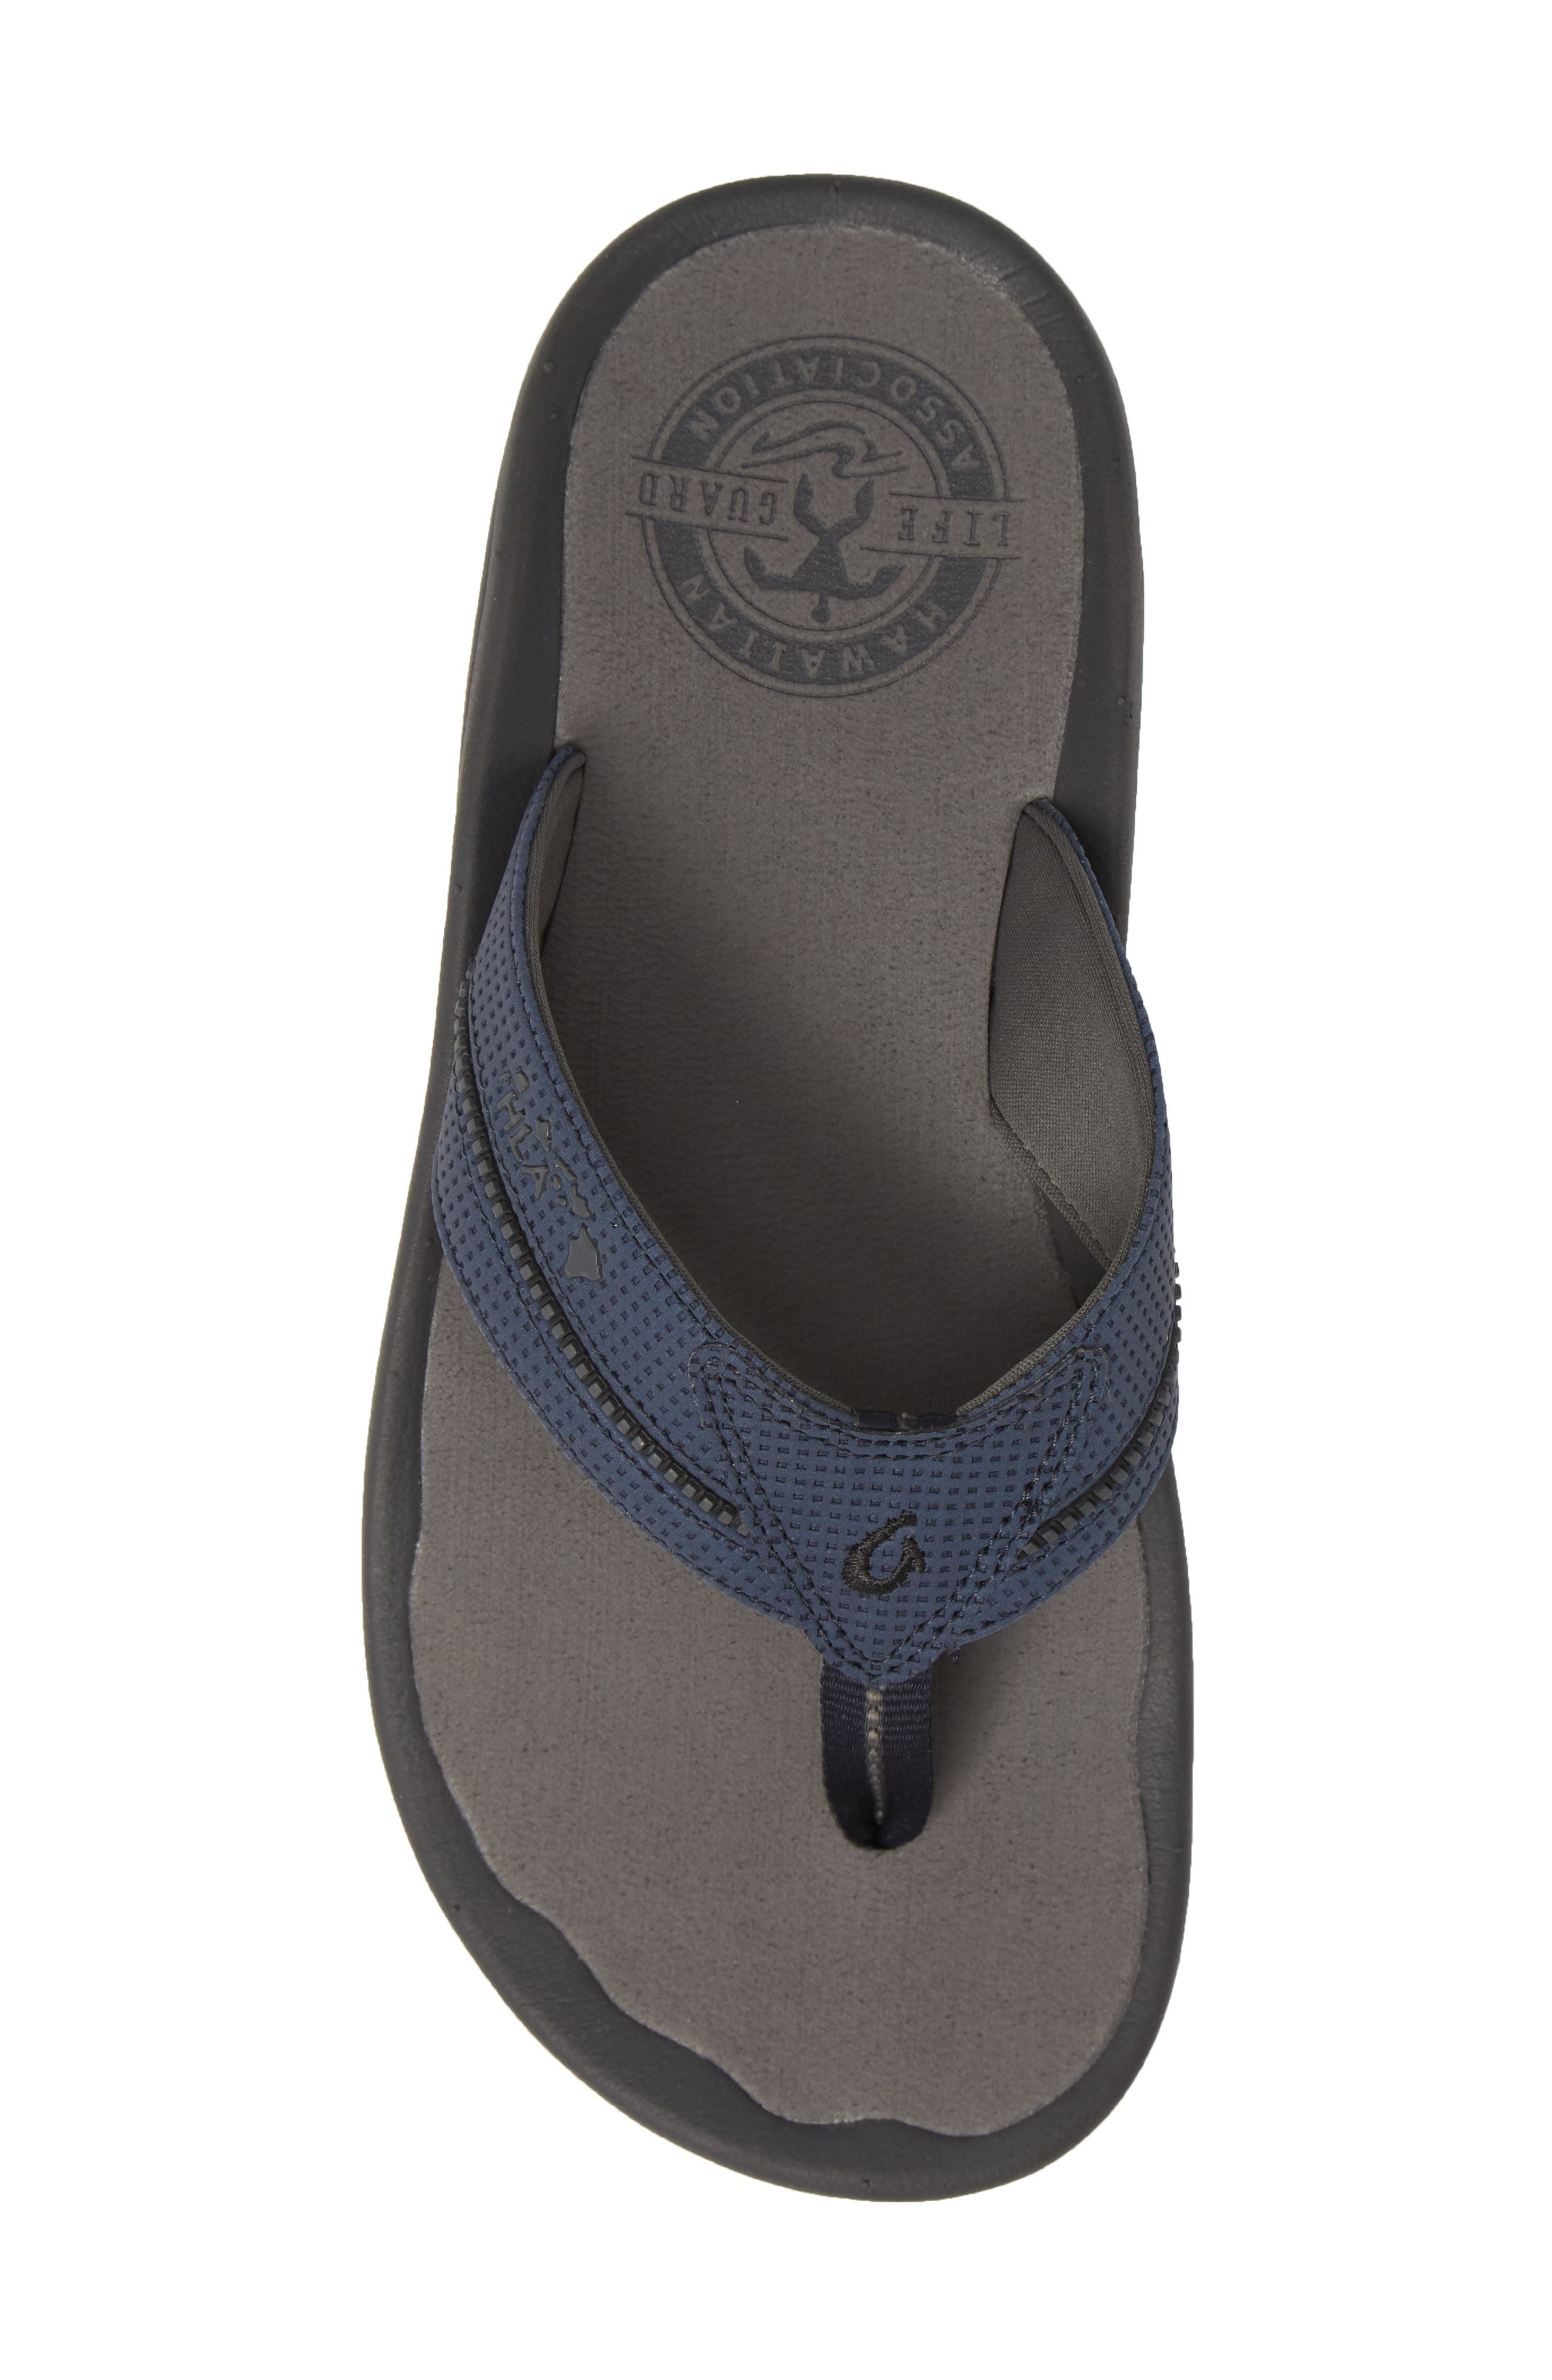 OLUKAI, 'Kia'i II' Flip Flop, Alternate thumbnail 5, color, TRENCH BLUE/ CHARCOAL